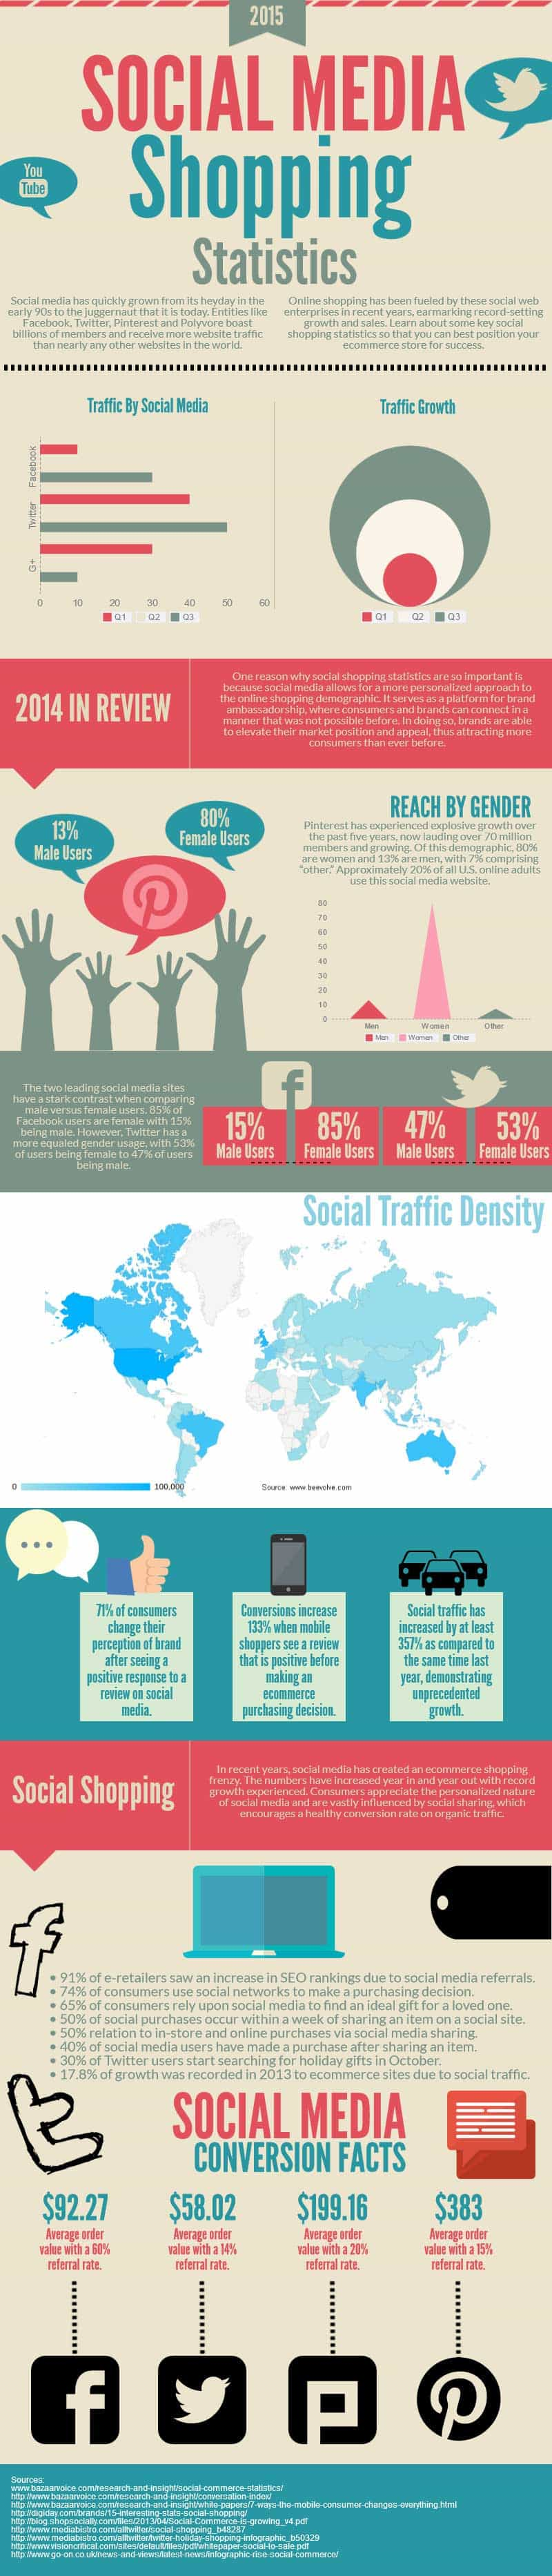 socialshopping2015[fusion_builder_container hundred_percent=